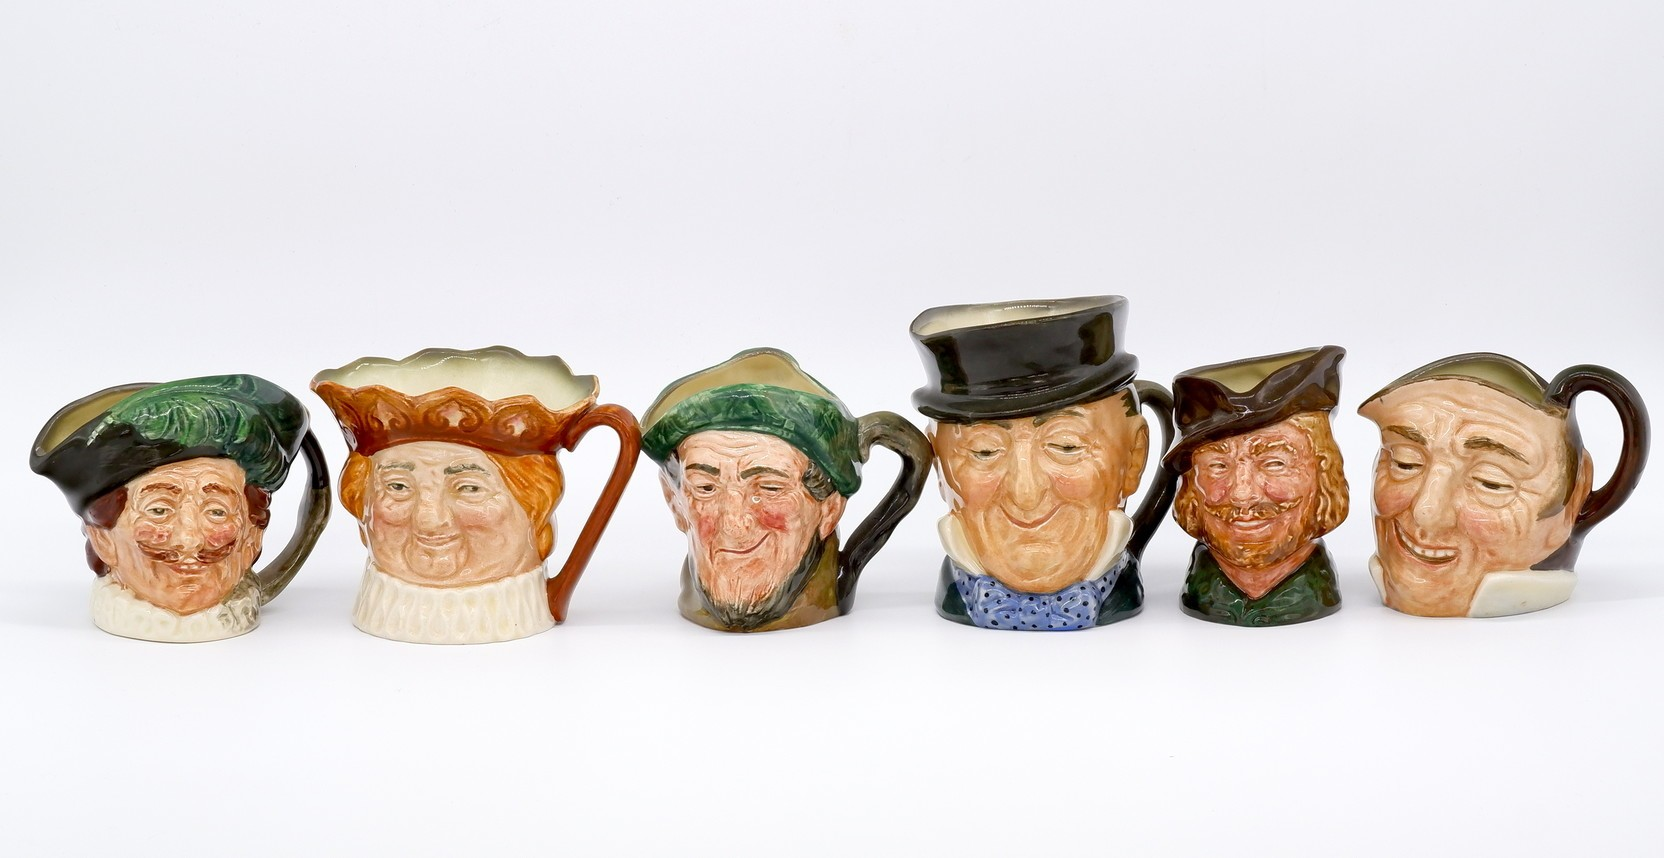 'Collection of Six Royal Doulton Toby Jugs with A Mark'